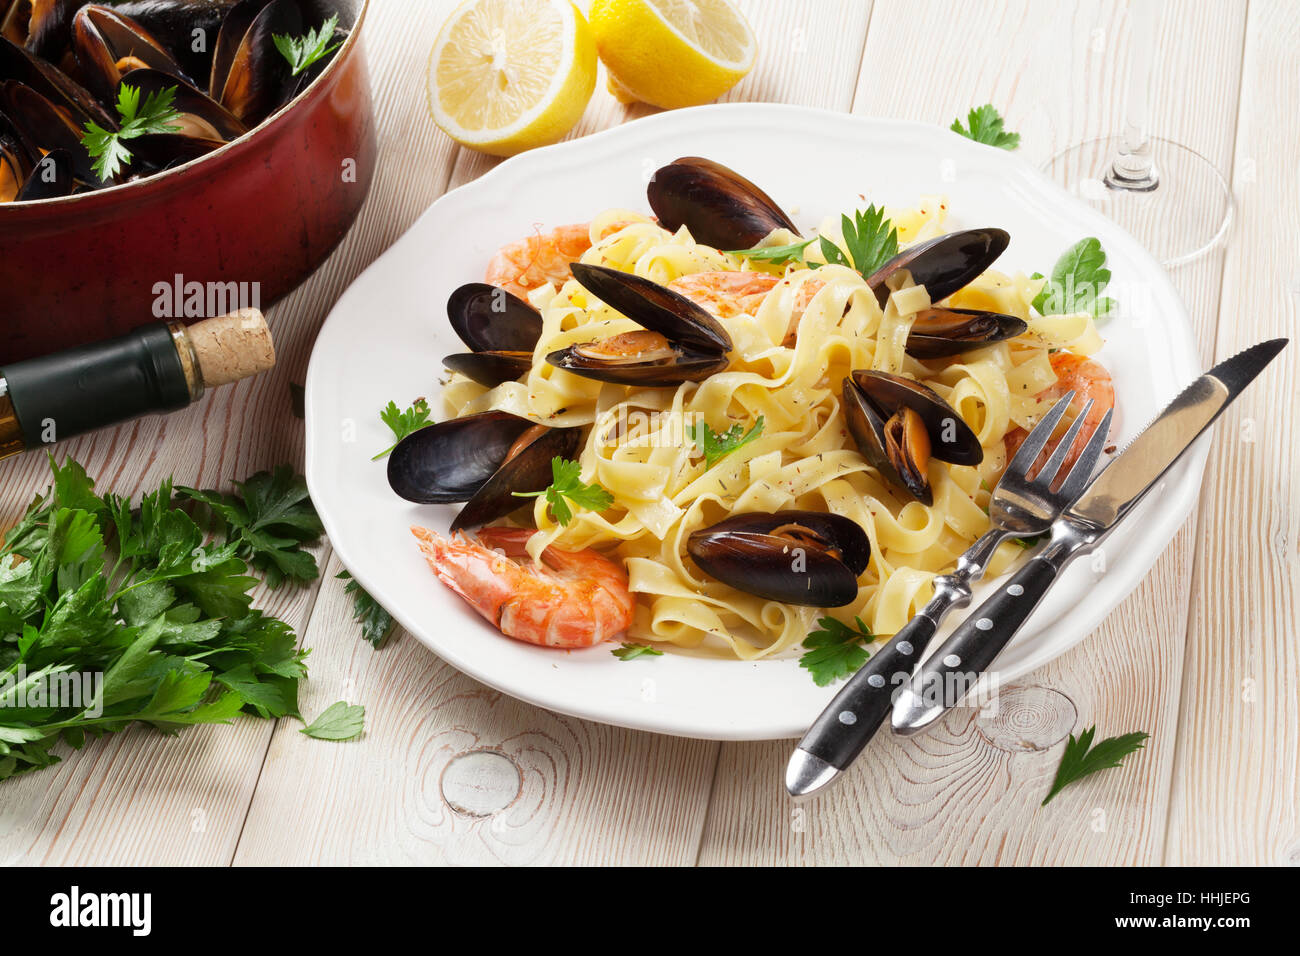 Pasta with seafood and white wine on wooden table. Mussels and prawns Stock Photo